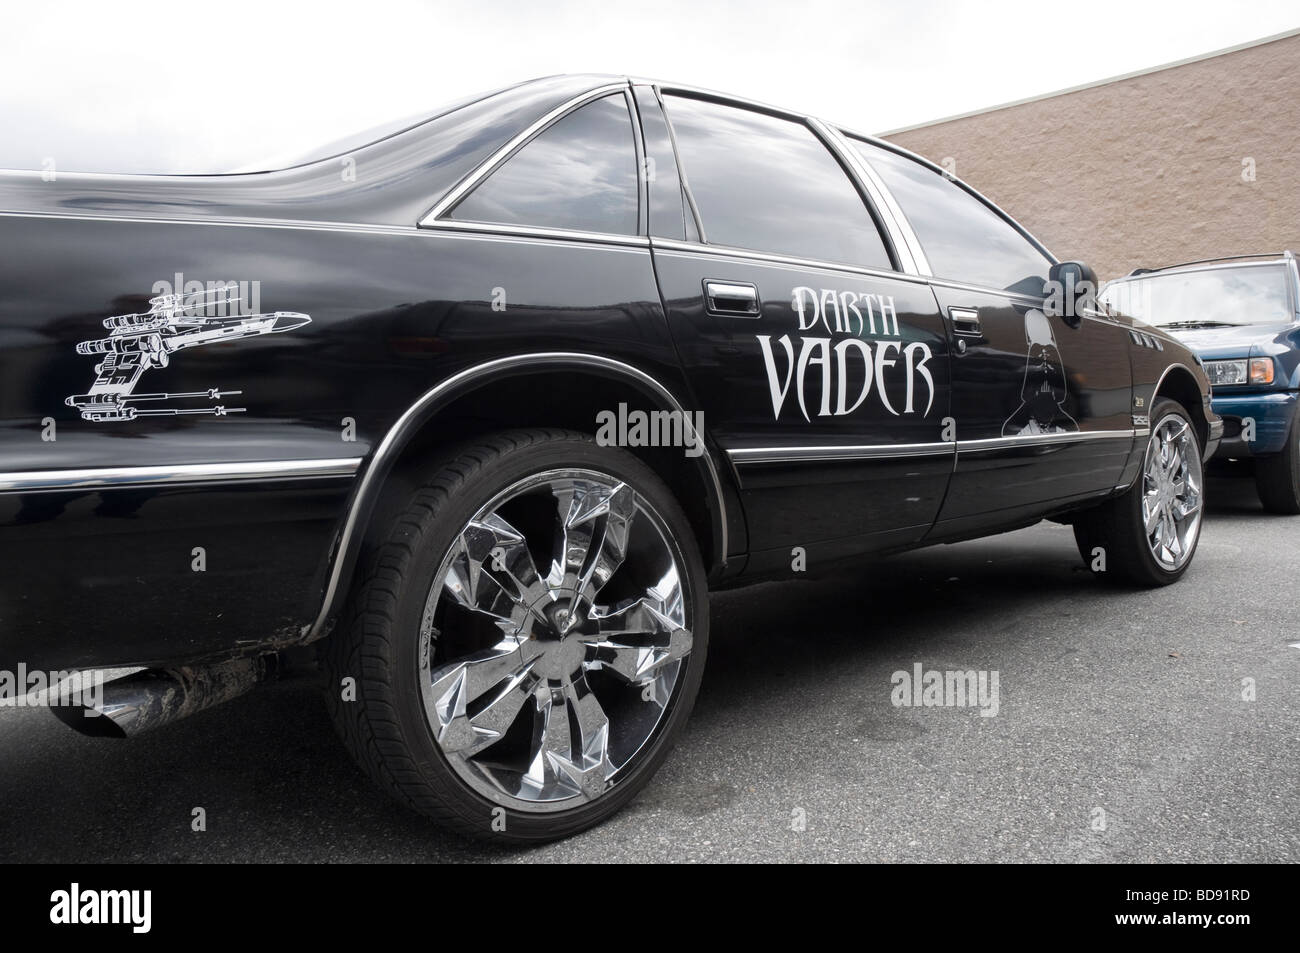 Star Wars Car High Resolution Stock Photography And Images Alamy